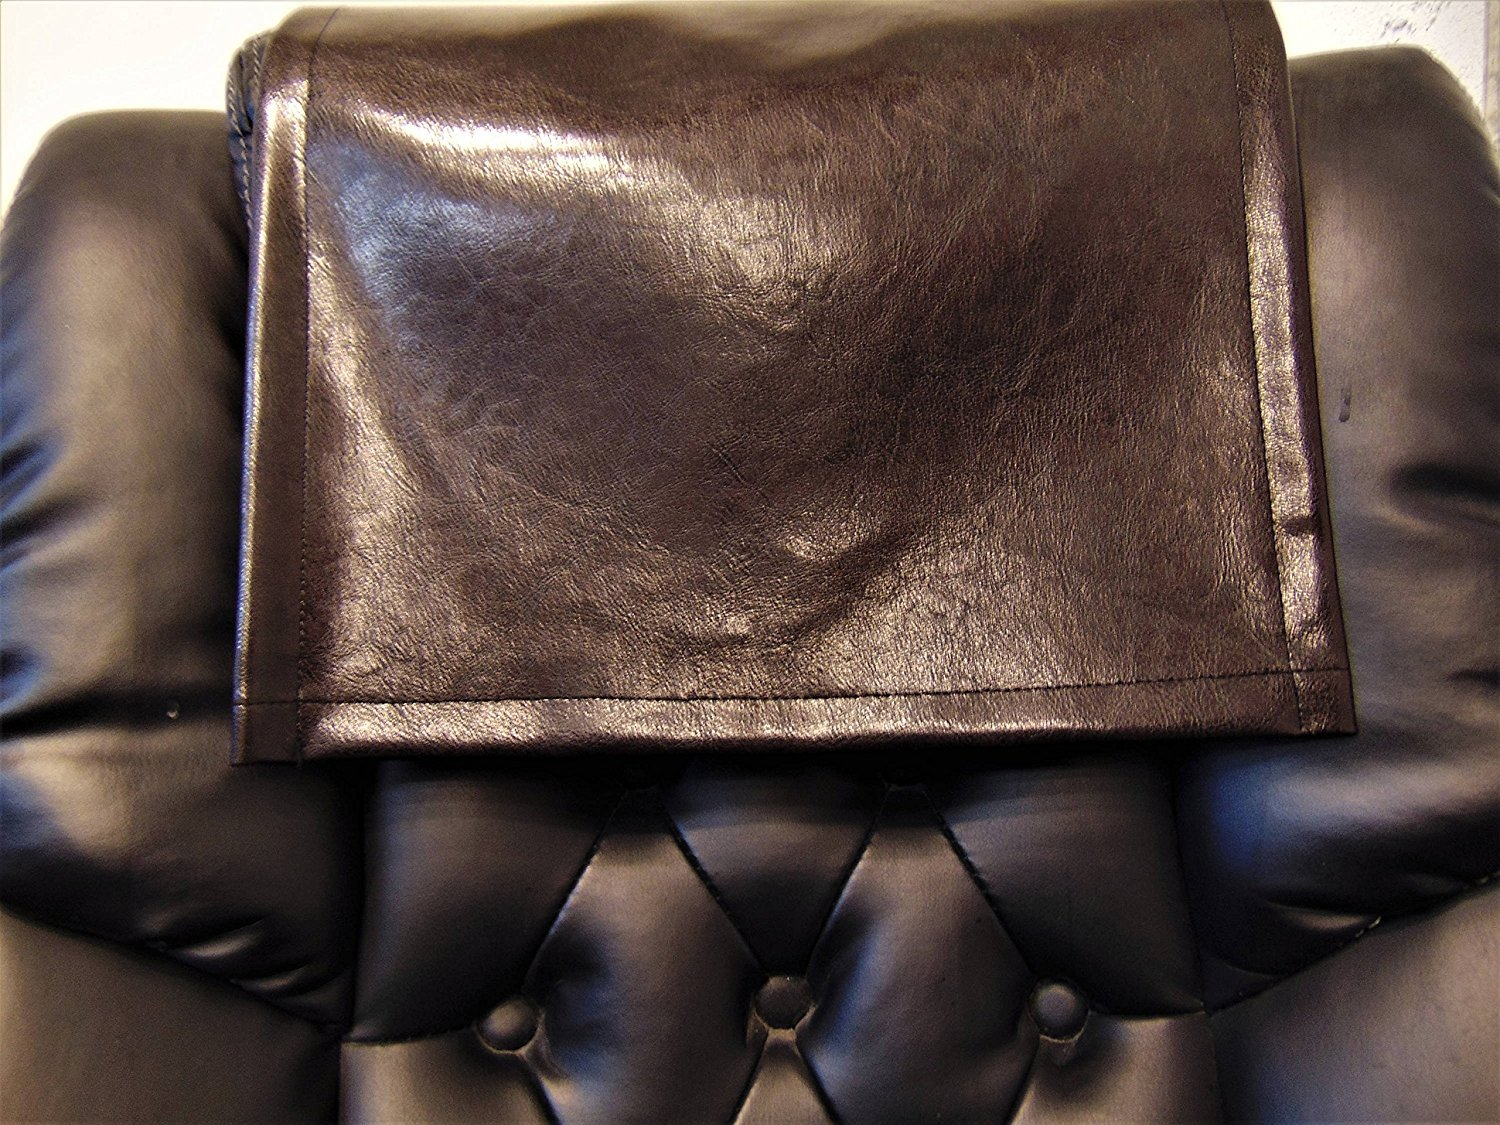 Vinyl, Brown Houston, 16x16, Sofa, Loveseat, Chaise, Theater Seat, RV Cover, Chair Caps, Headrest Pad, Recliner Head Cover, Protector luvfabrics hust